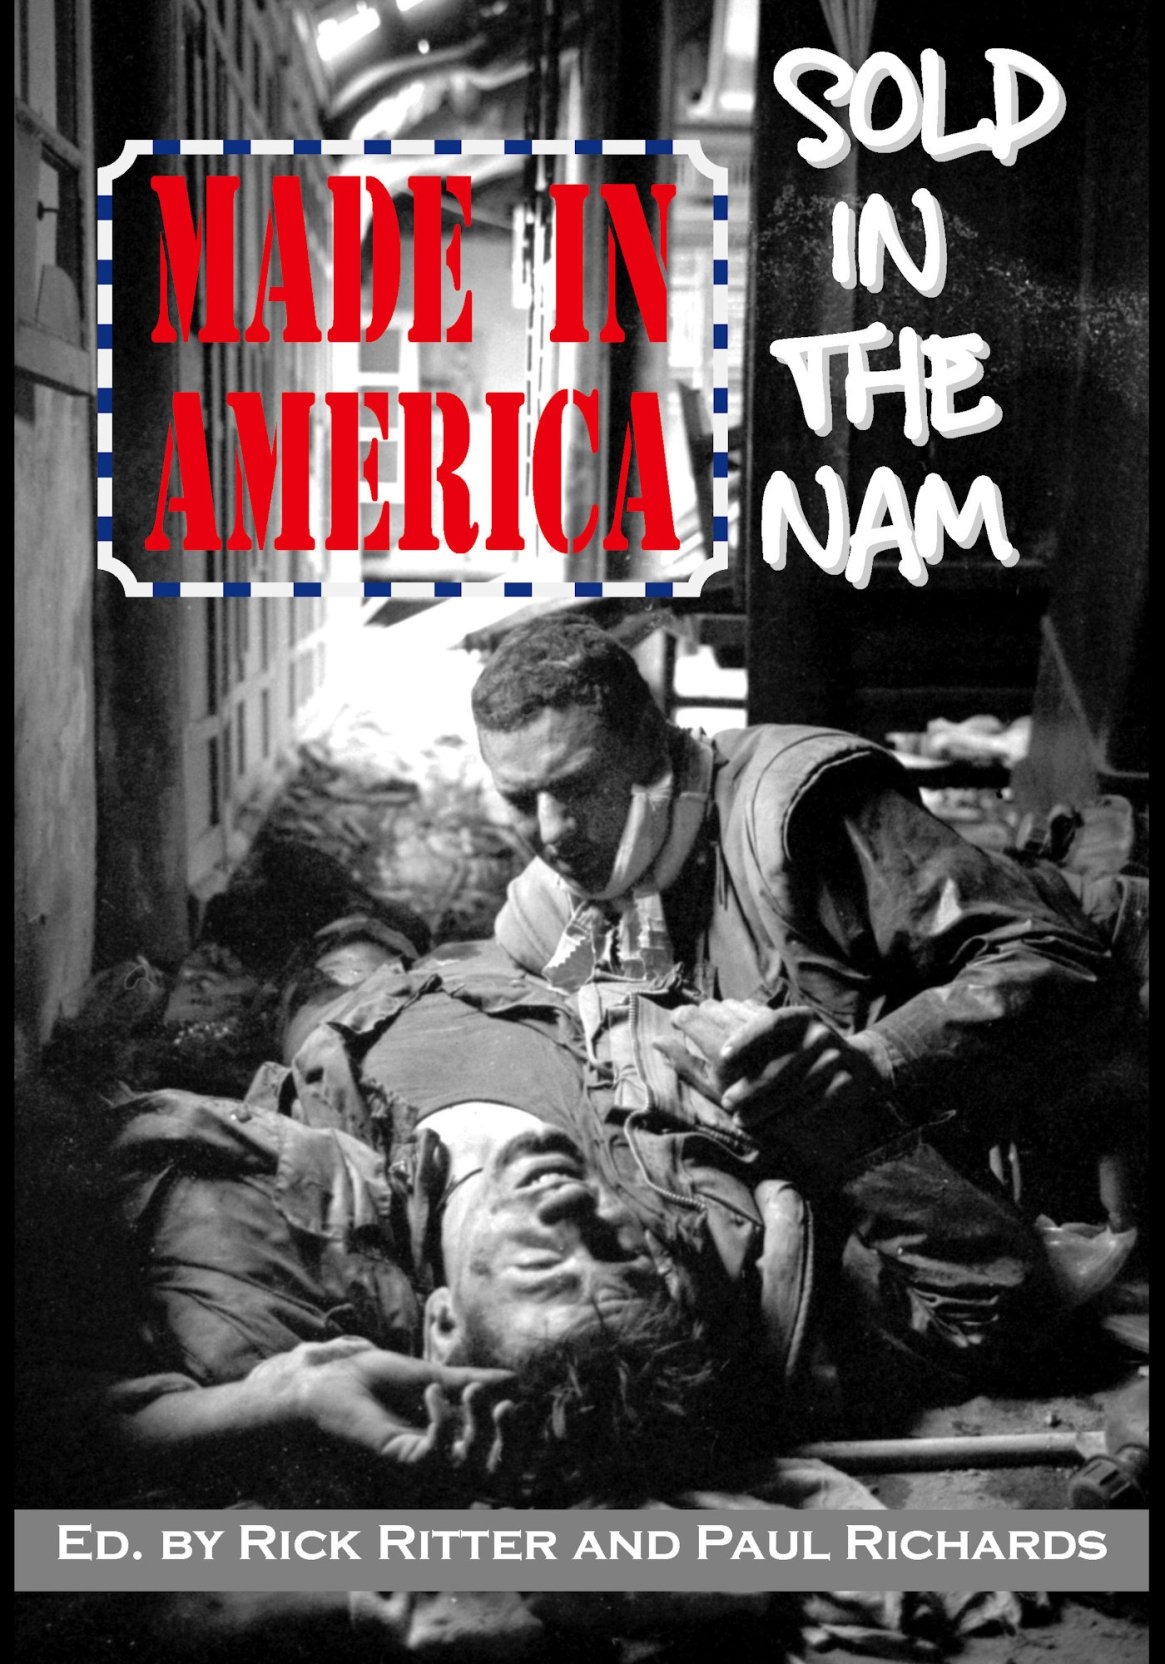 Made in America, Sold in the Nam: A Continuing Legacy of Pain 978-1-61599-049-8